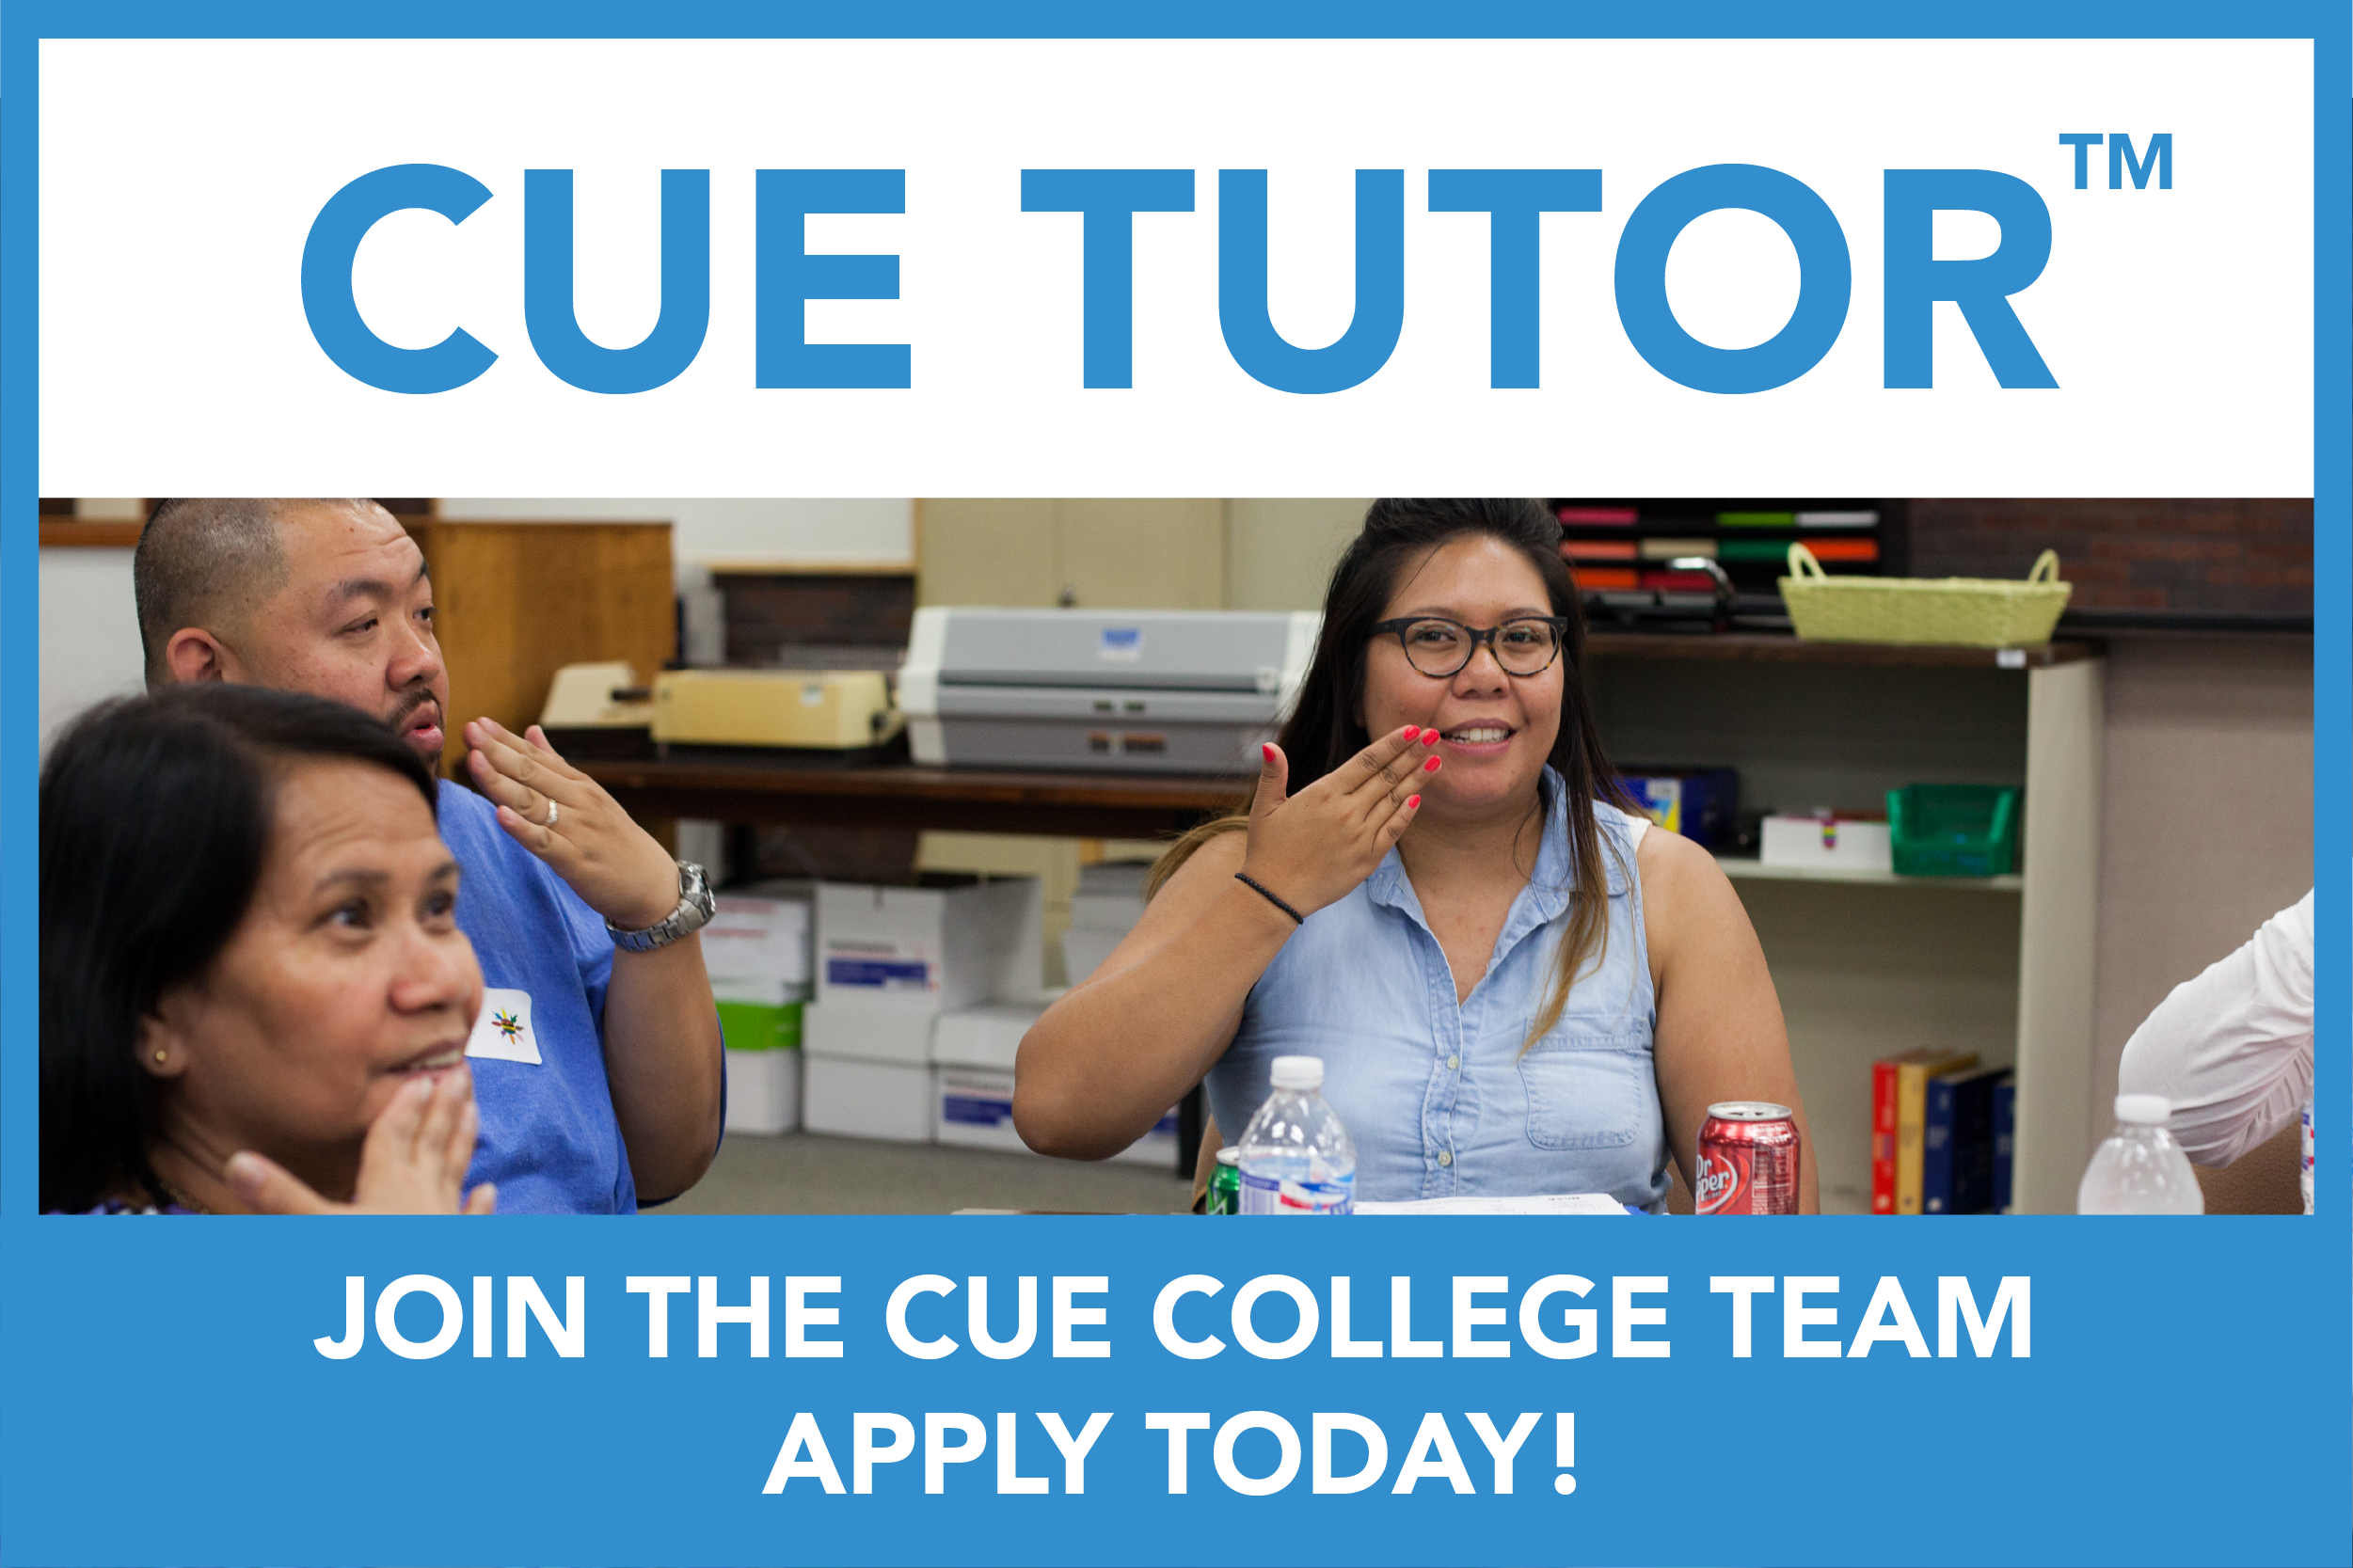 Cue Tutor - Join the Team Today